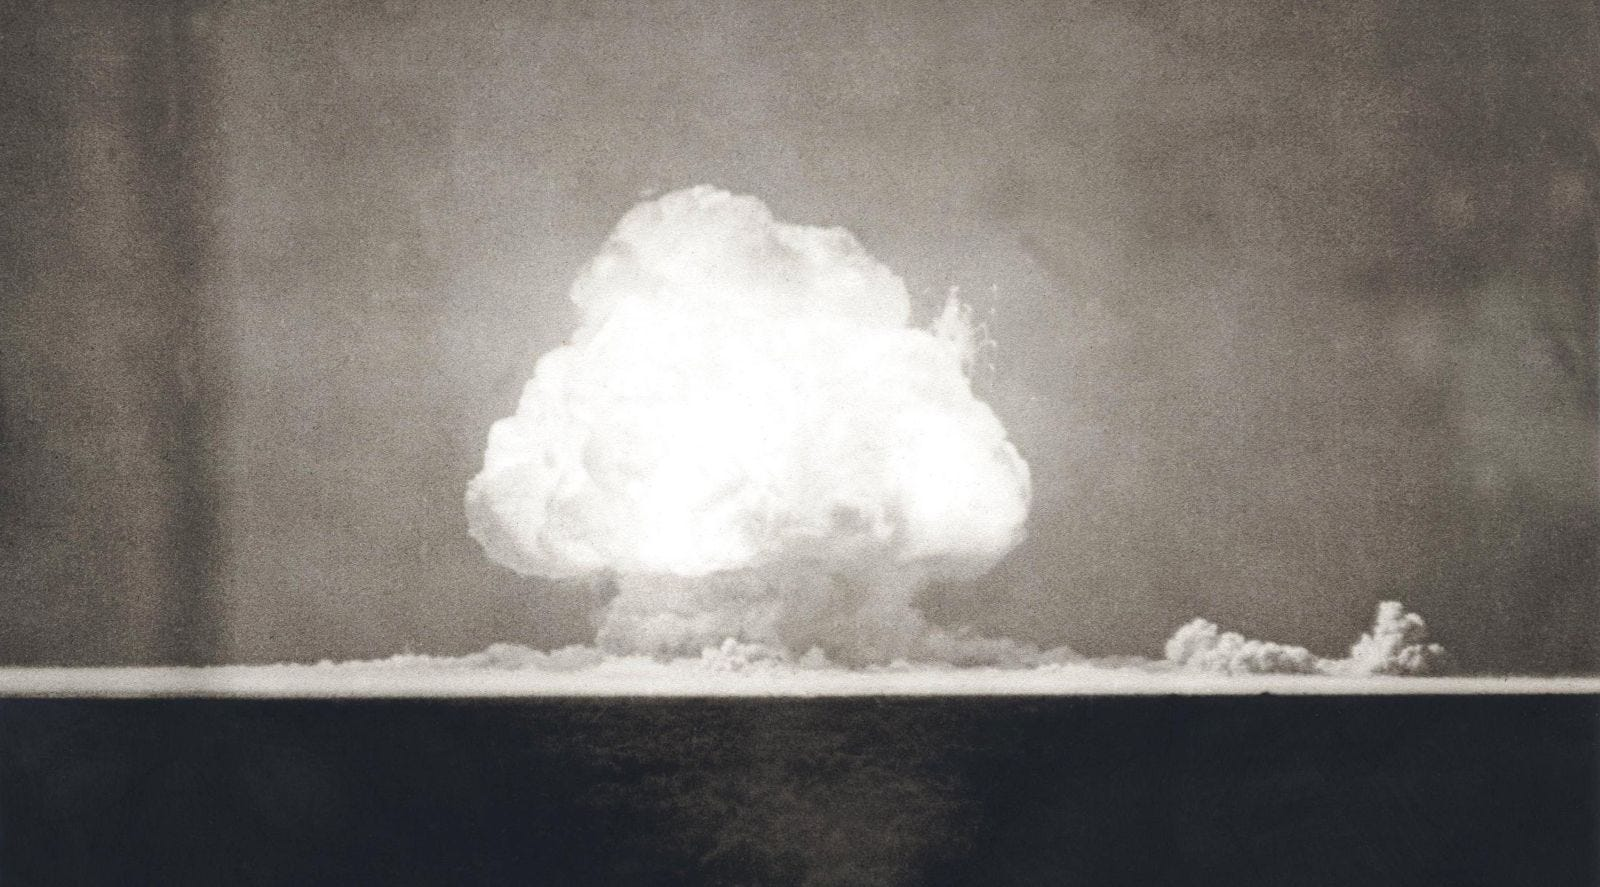 First Atomic Explosion on July 16, 1945